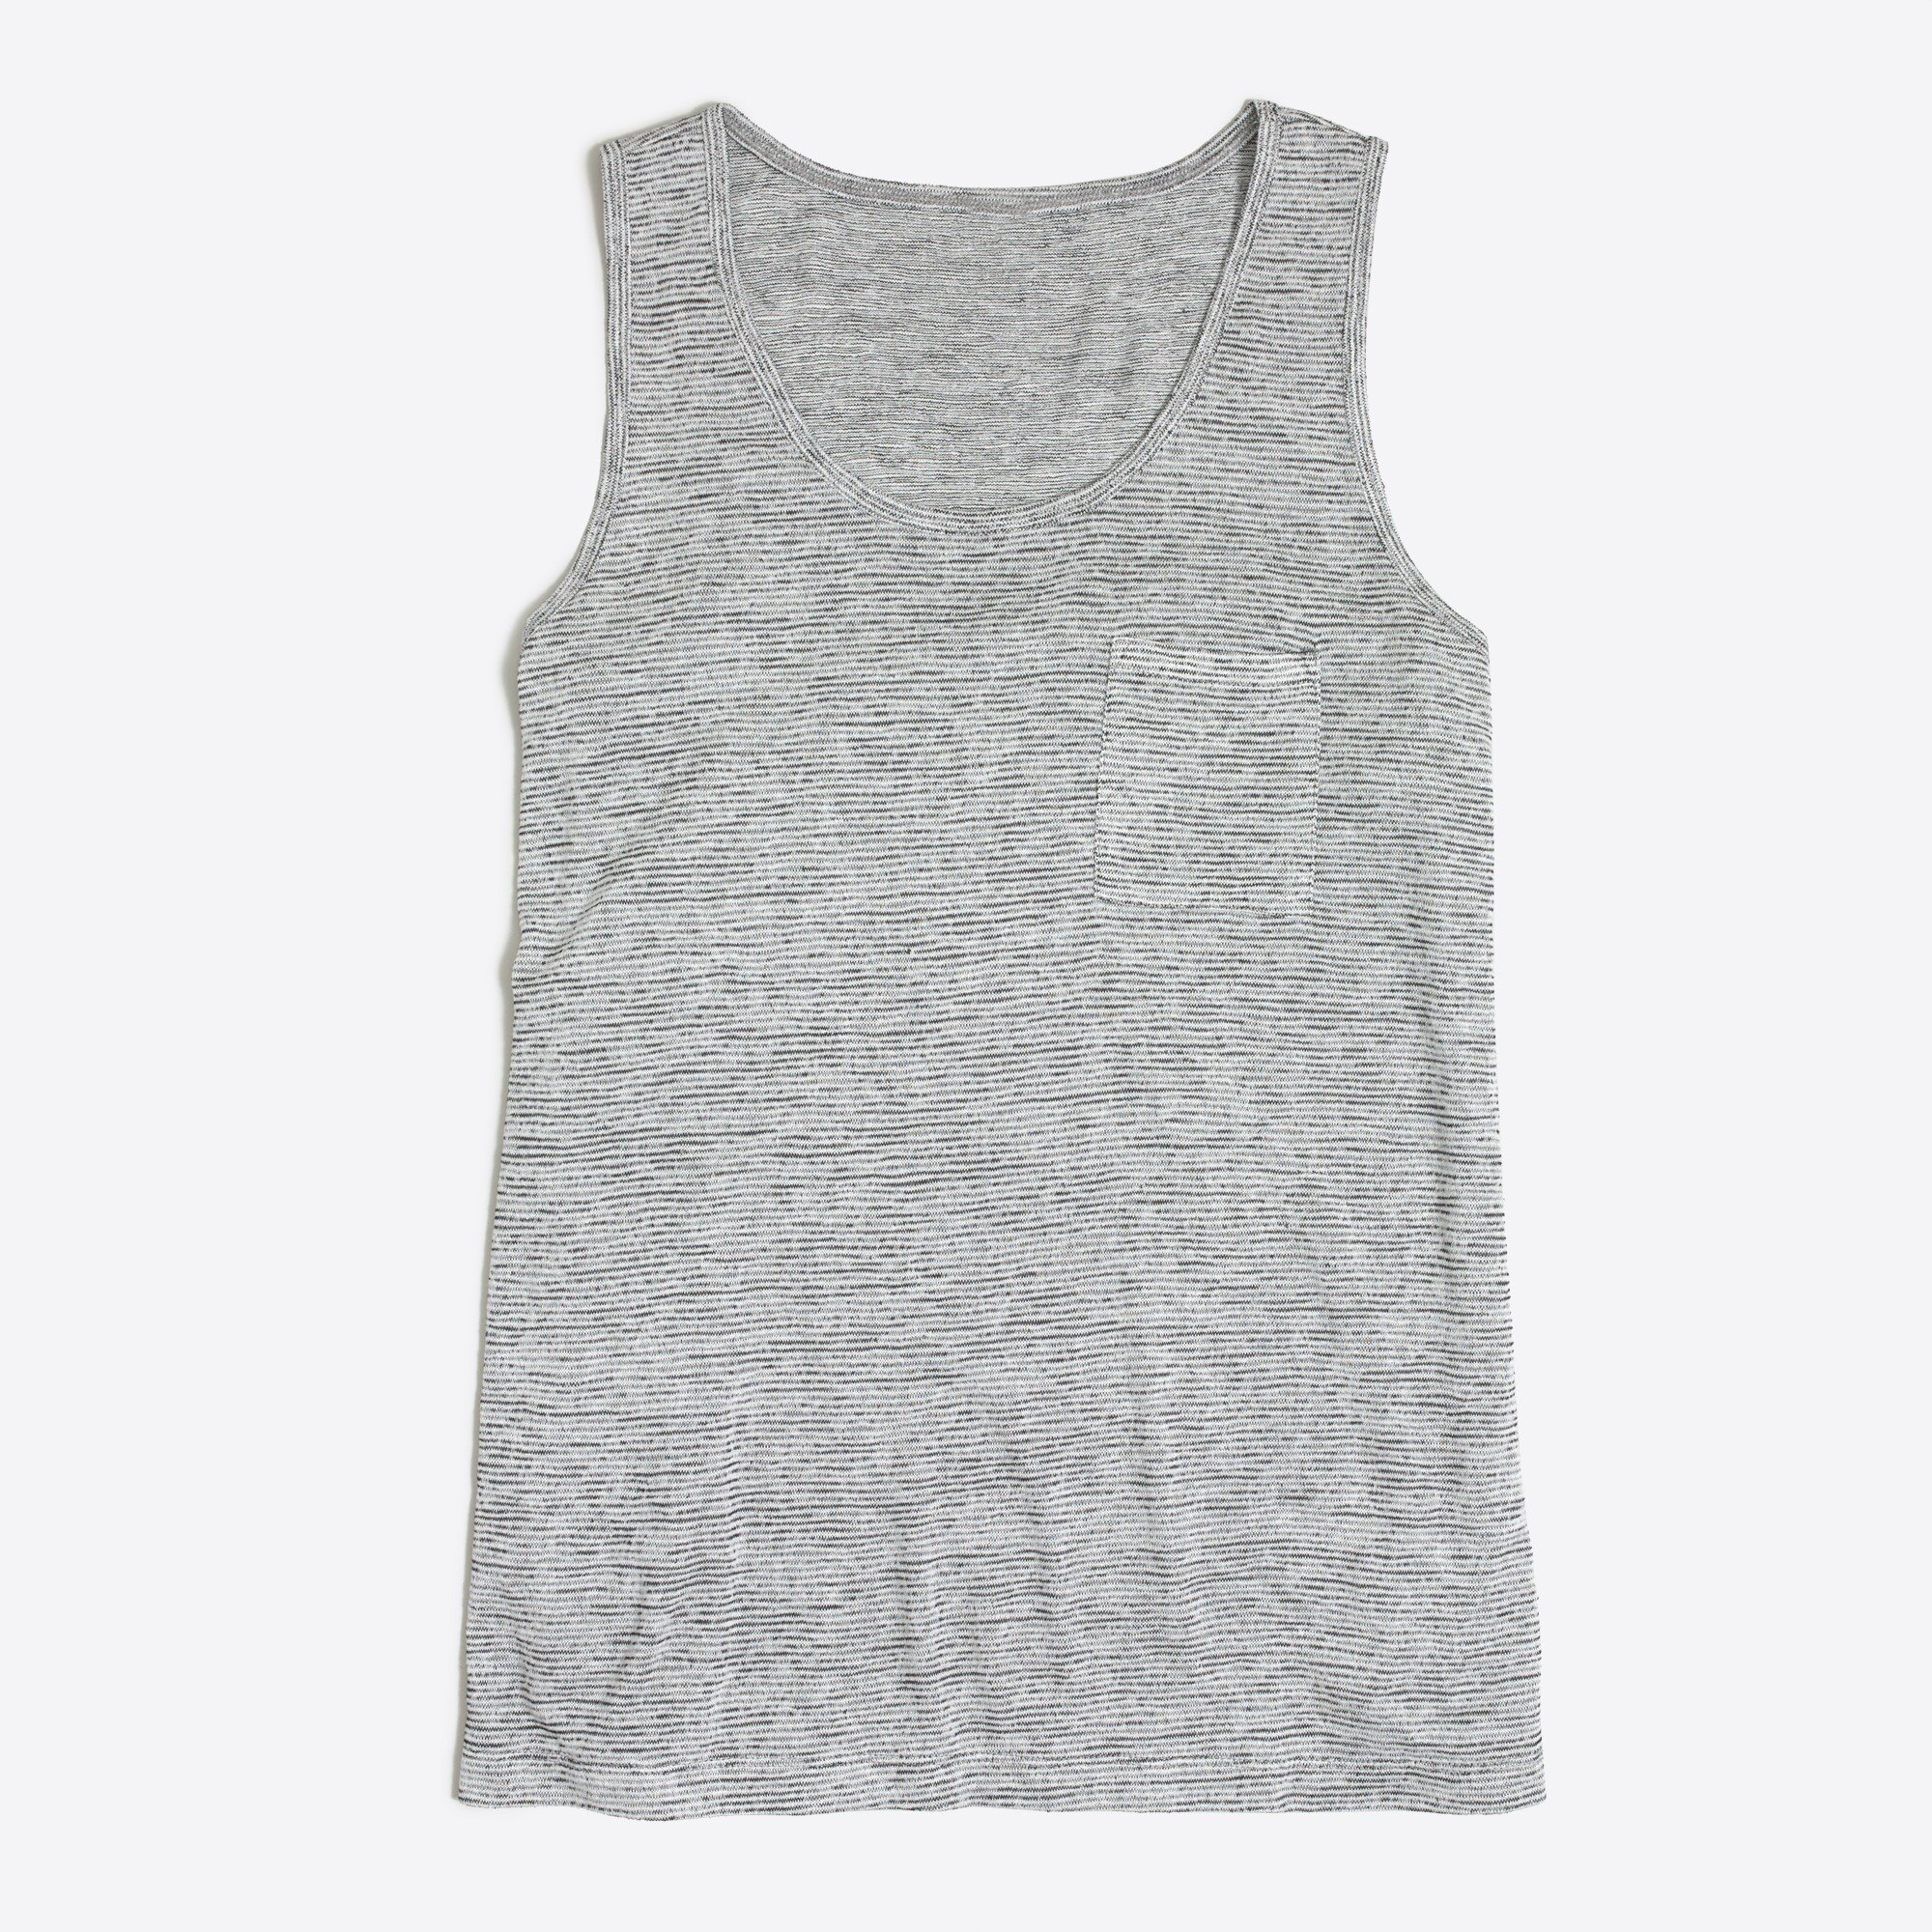 space-dyed tank top : factorywomen sleeveless